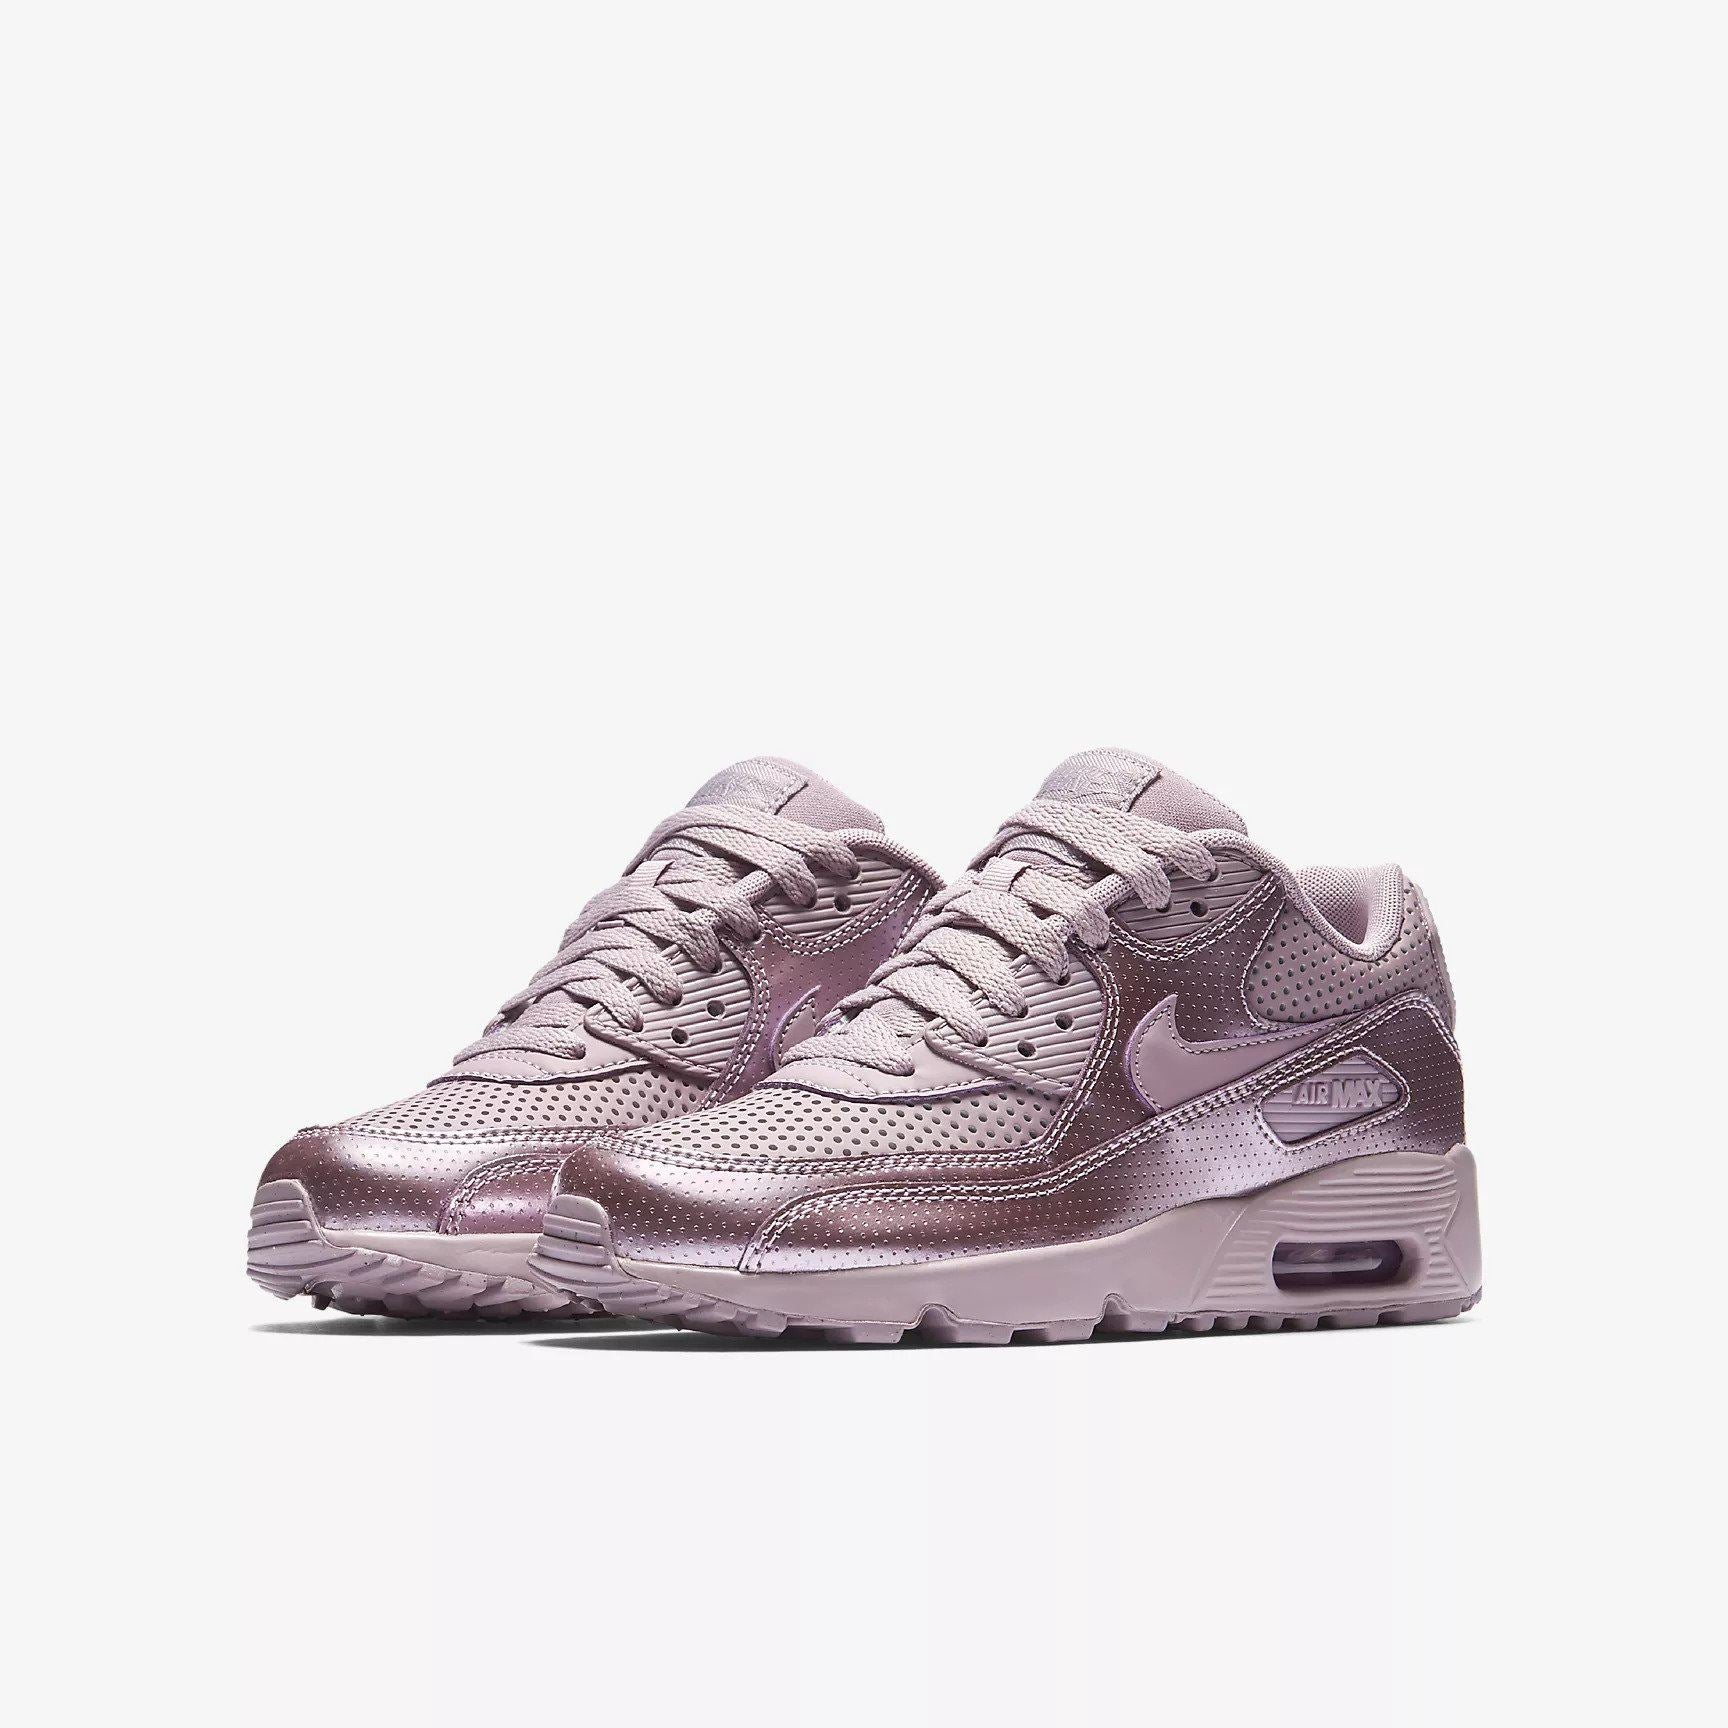 new style 5a1f9 379af Nike Air Max 90 SE LTR (GS) Elemental Rose 859633 600